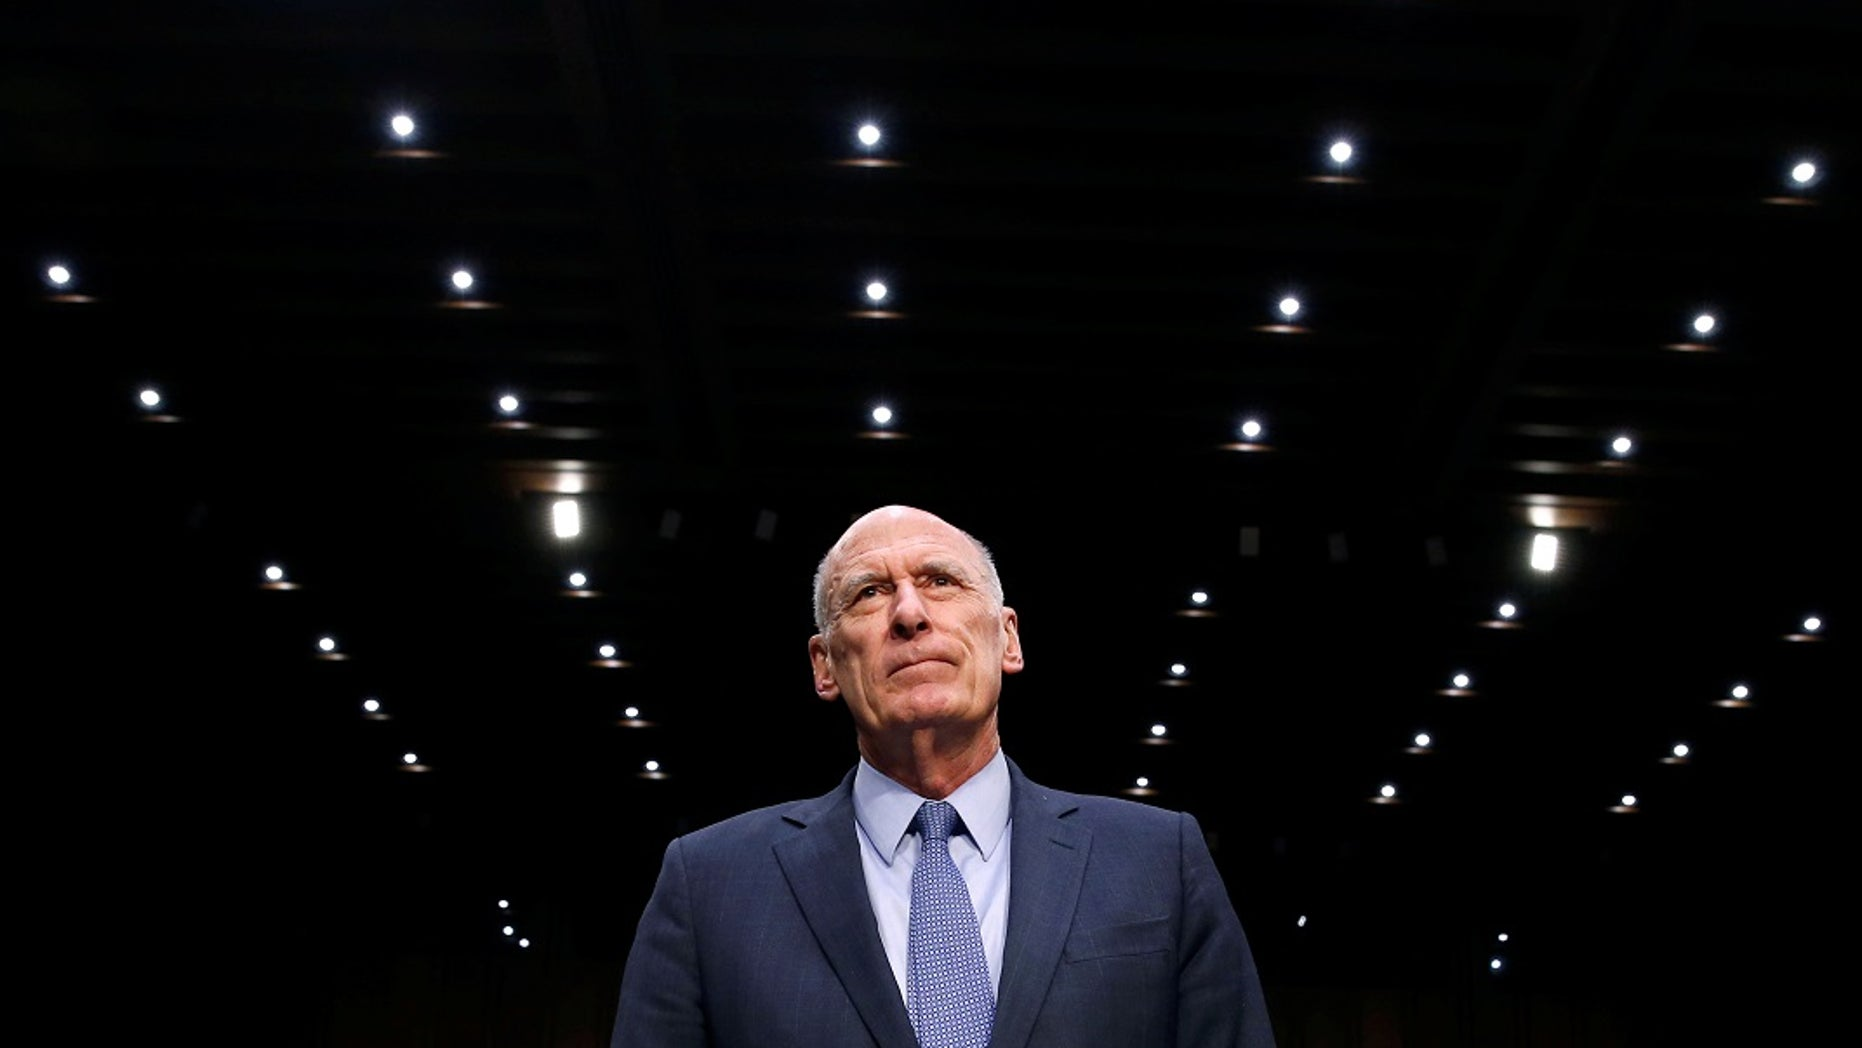 Daniel Coats is the fifth Director of National Intelligence.